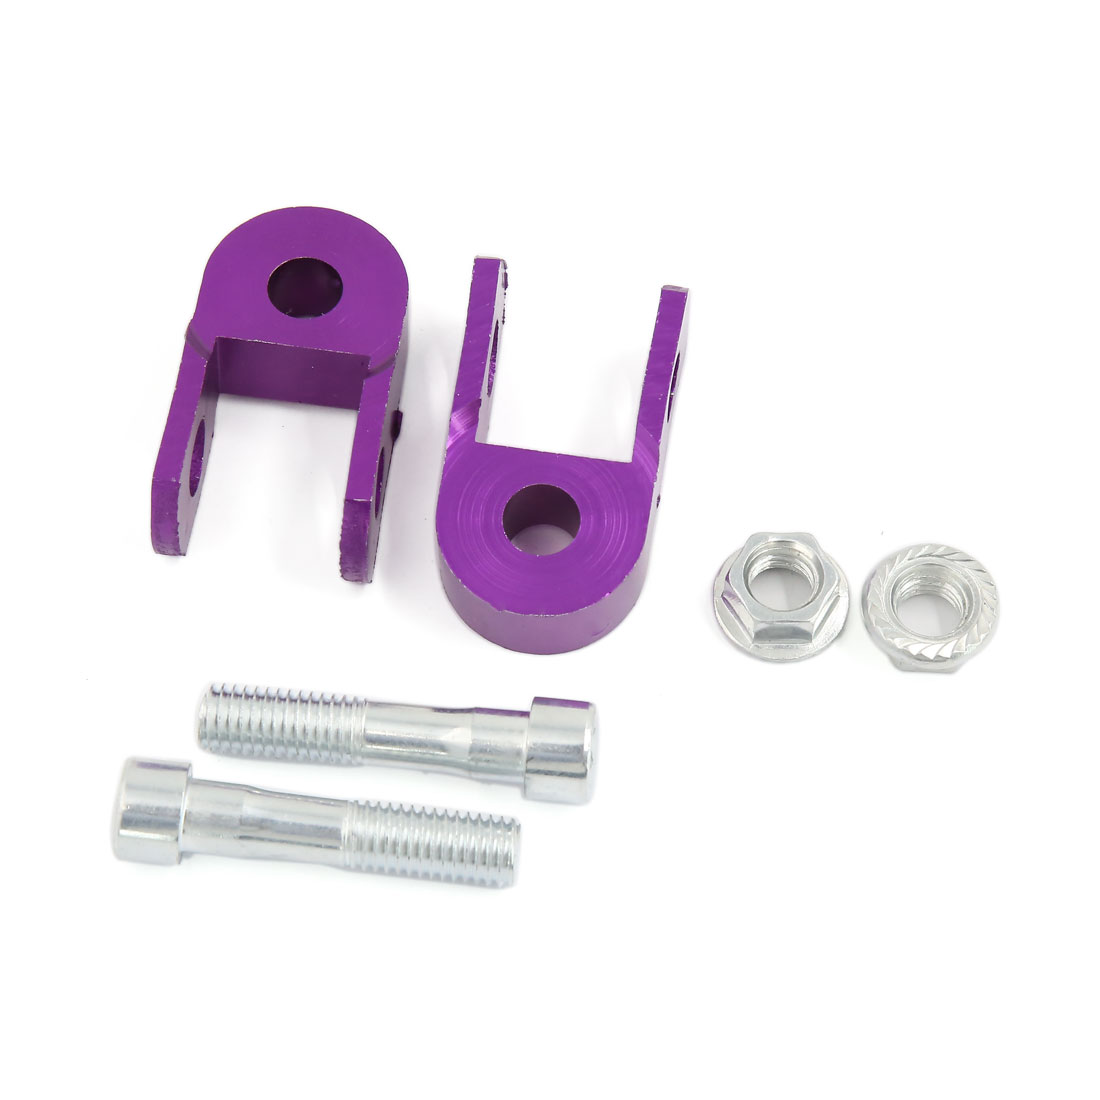 2pcs Purple Shock Absorber Height Extension Extender Riser for Motorcycle Pit Dirt Bike ATV